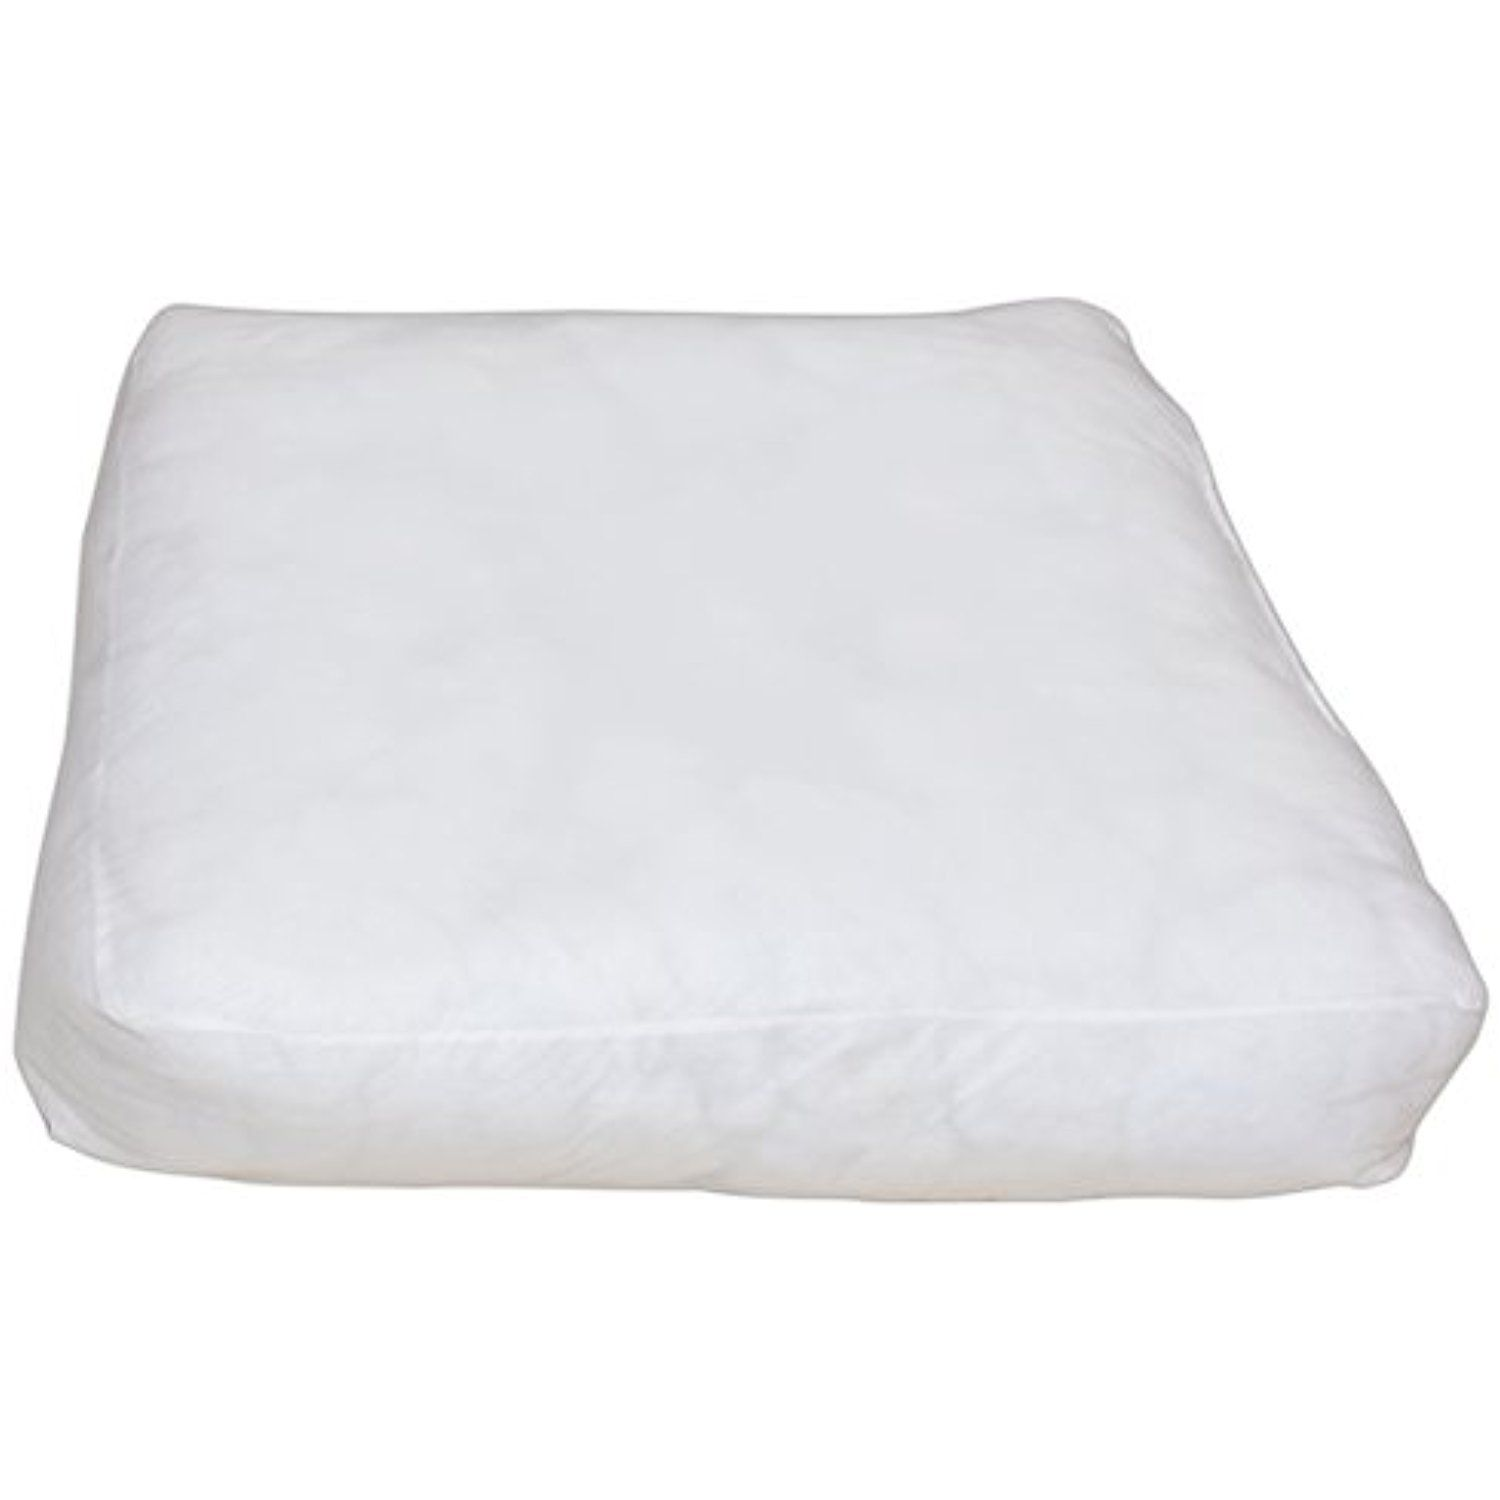 soft comfortable microfiber pillow cushion pillow insert sham